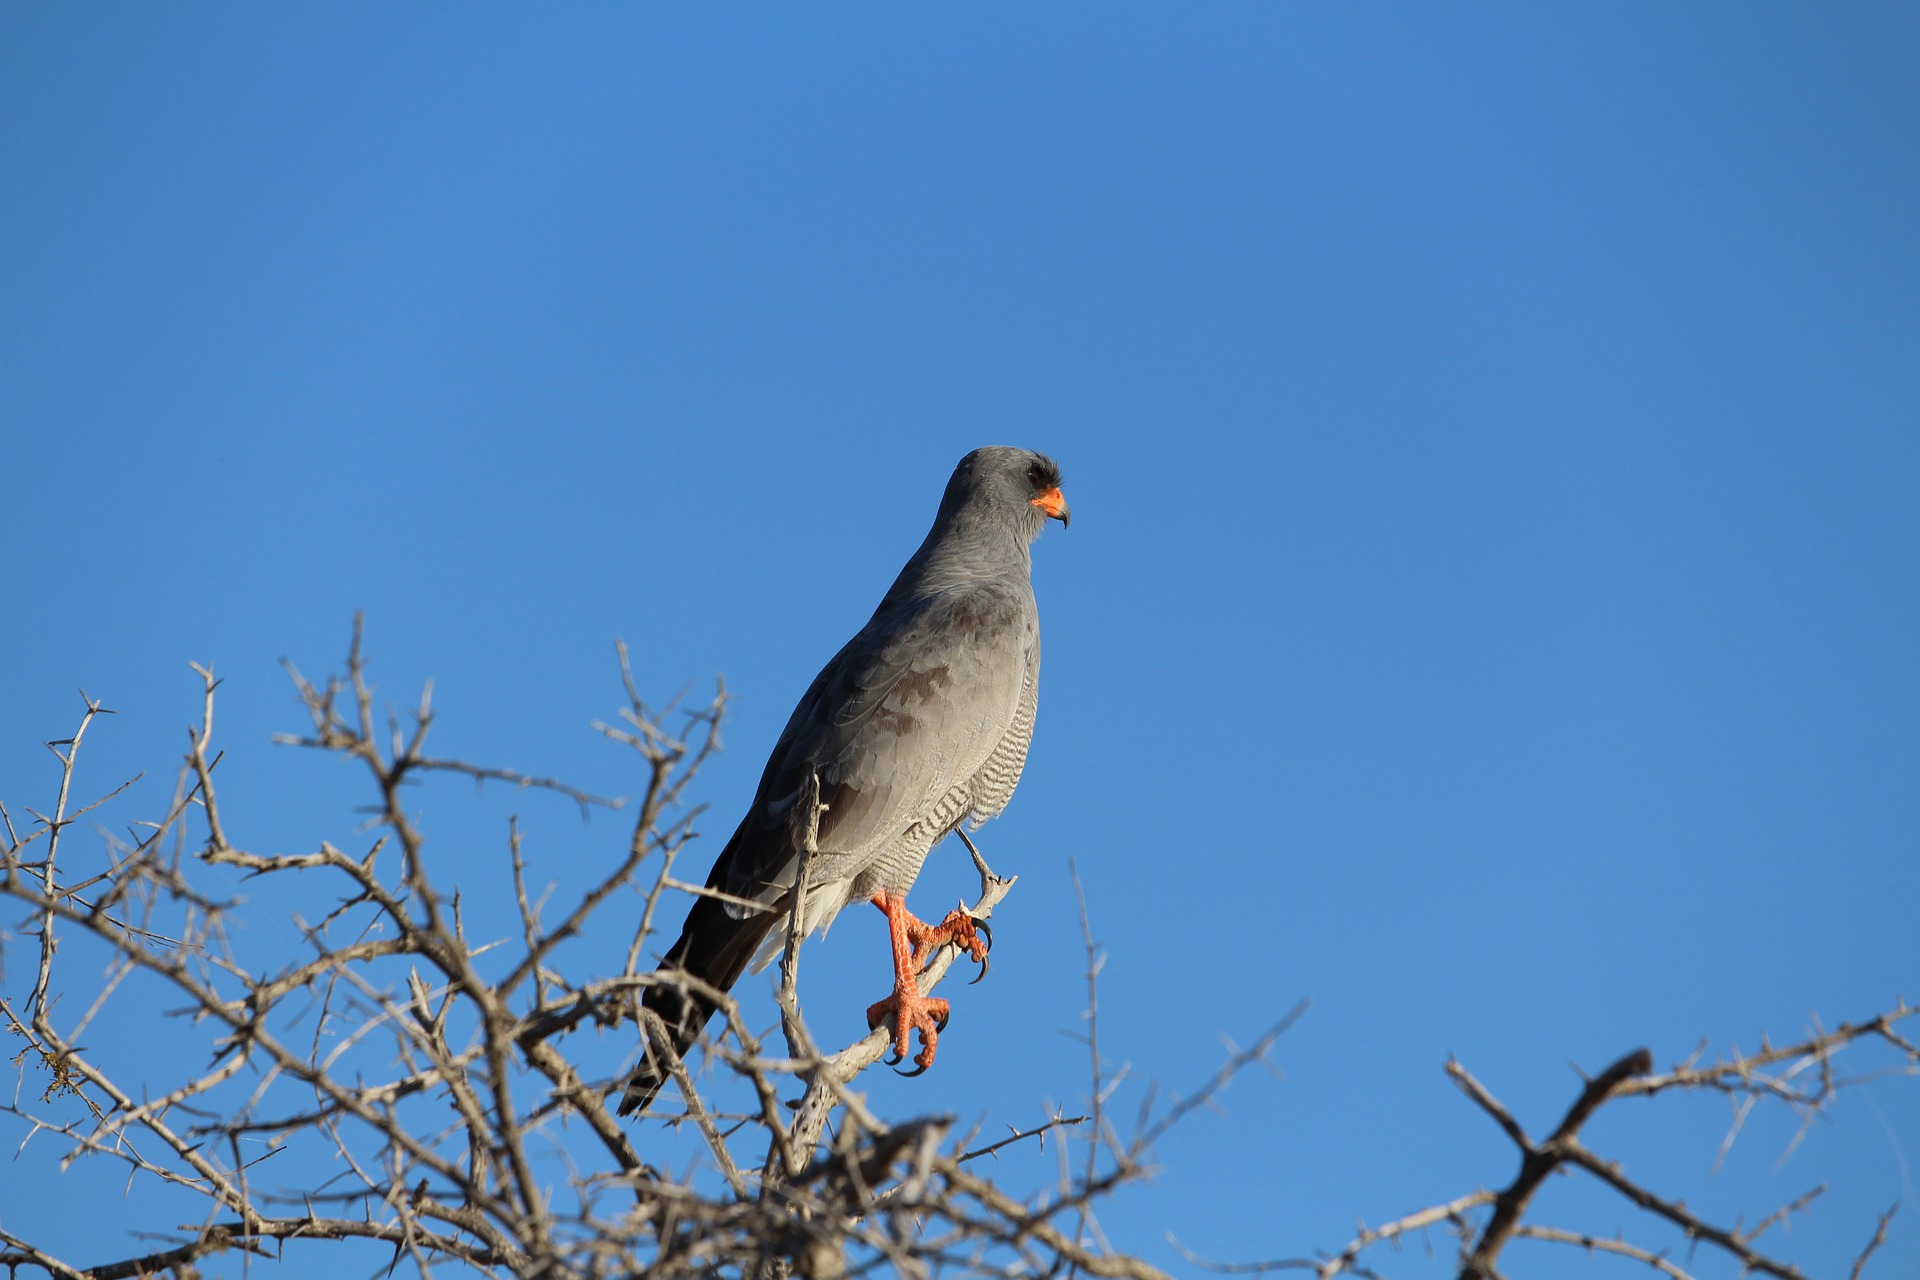 Raptor and other predatory birds can be found in Etosha National Park.